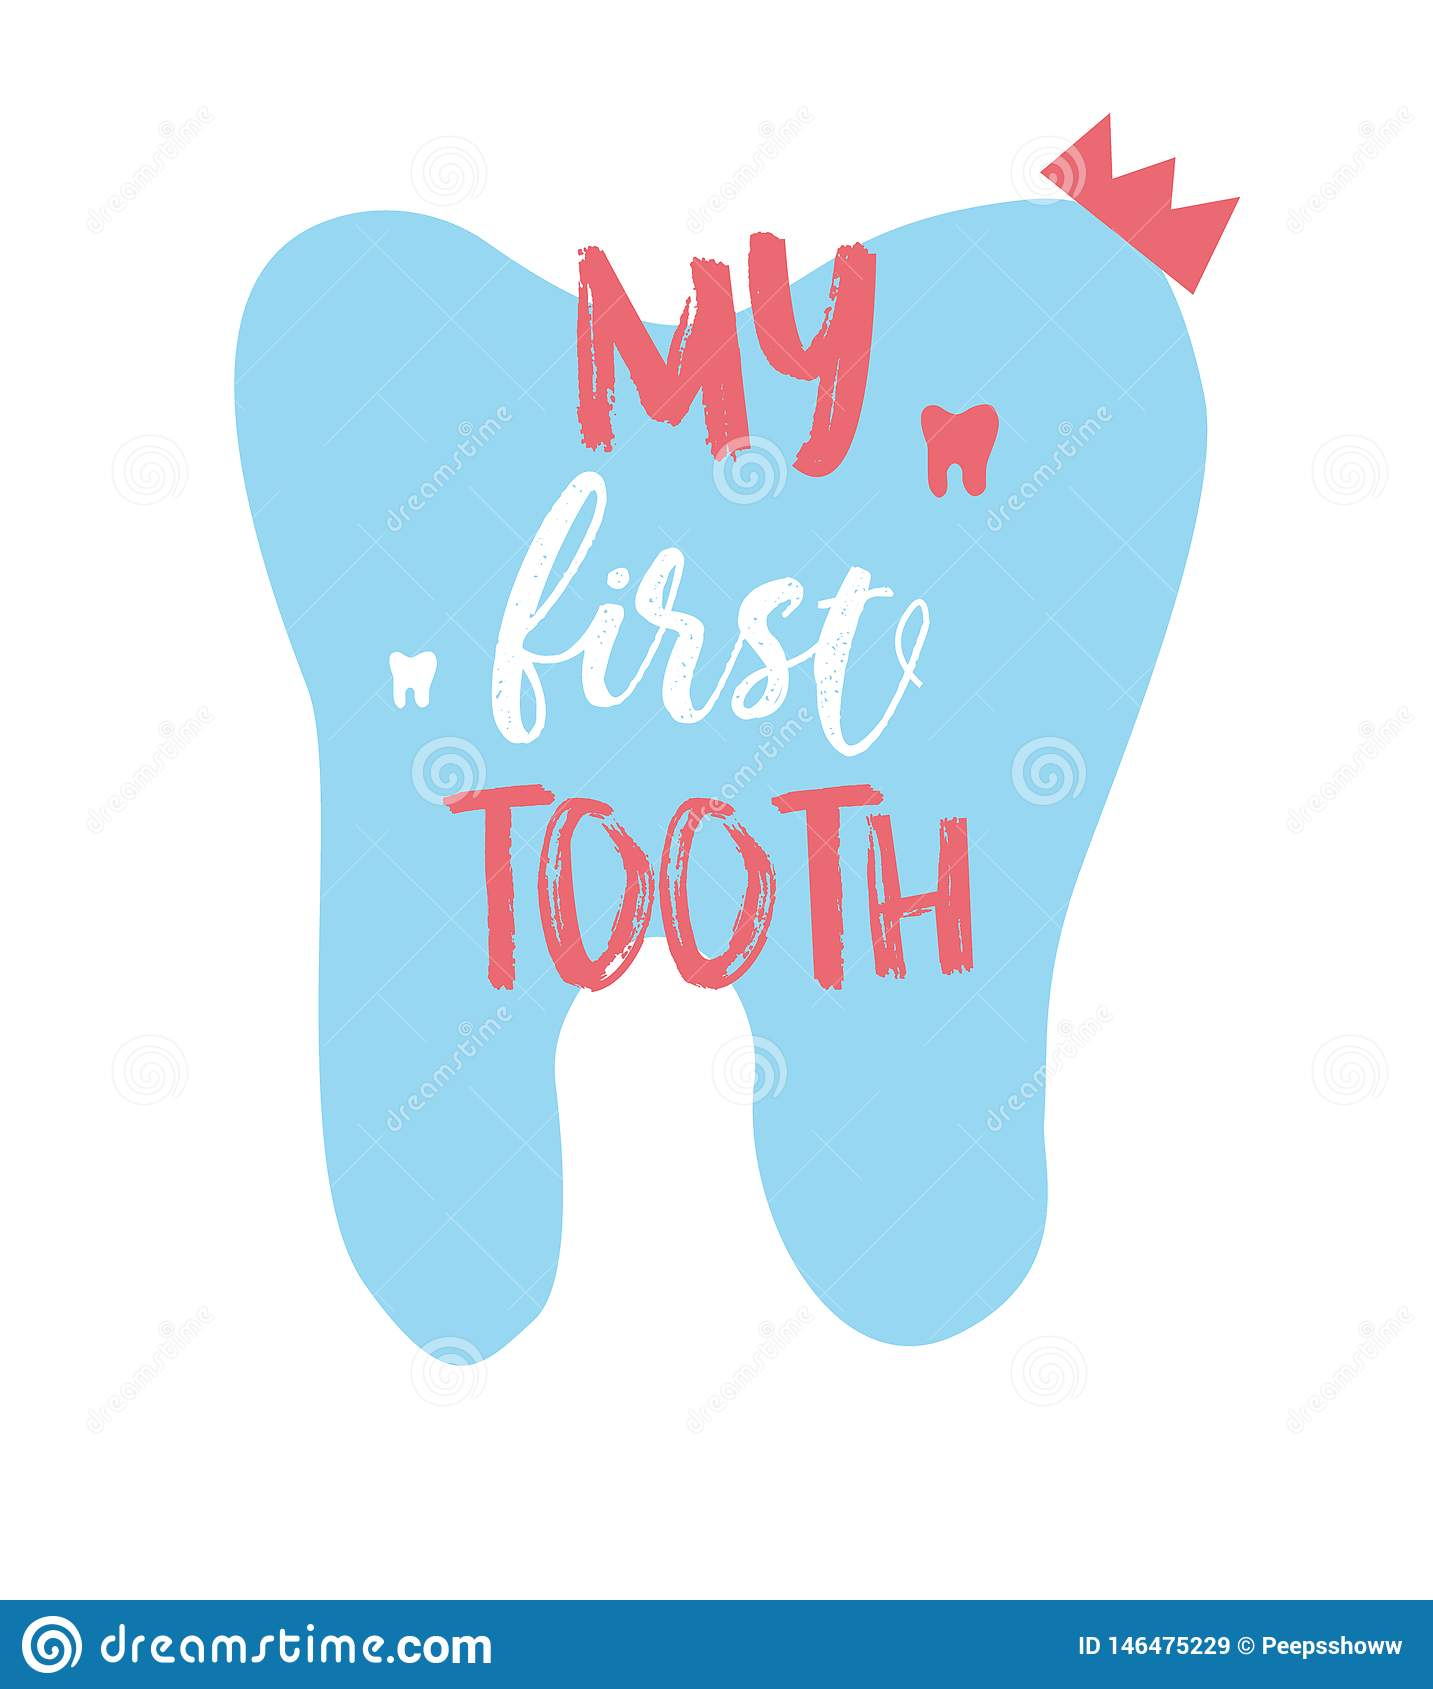 Lettering illustration of My first tooth. Ready congratulations for baby, parents. Typography poster with dental care quote, tooth